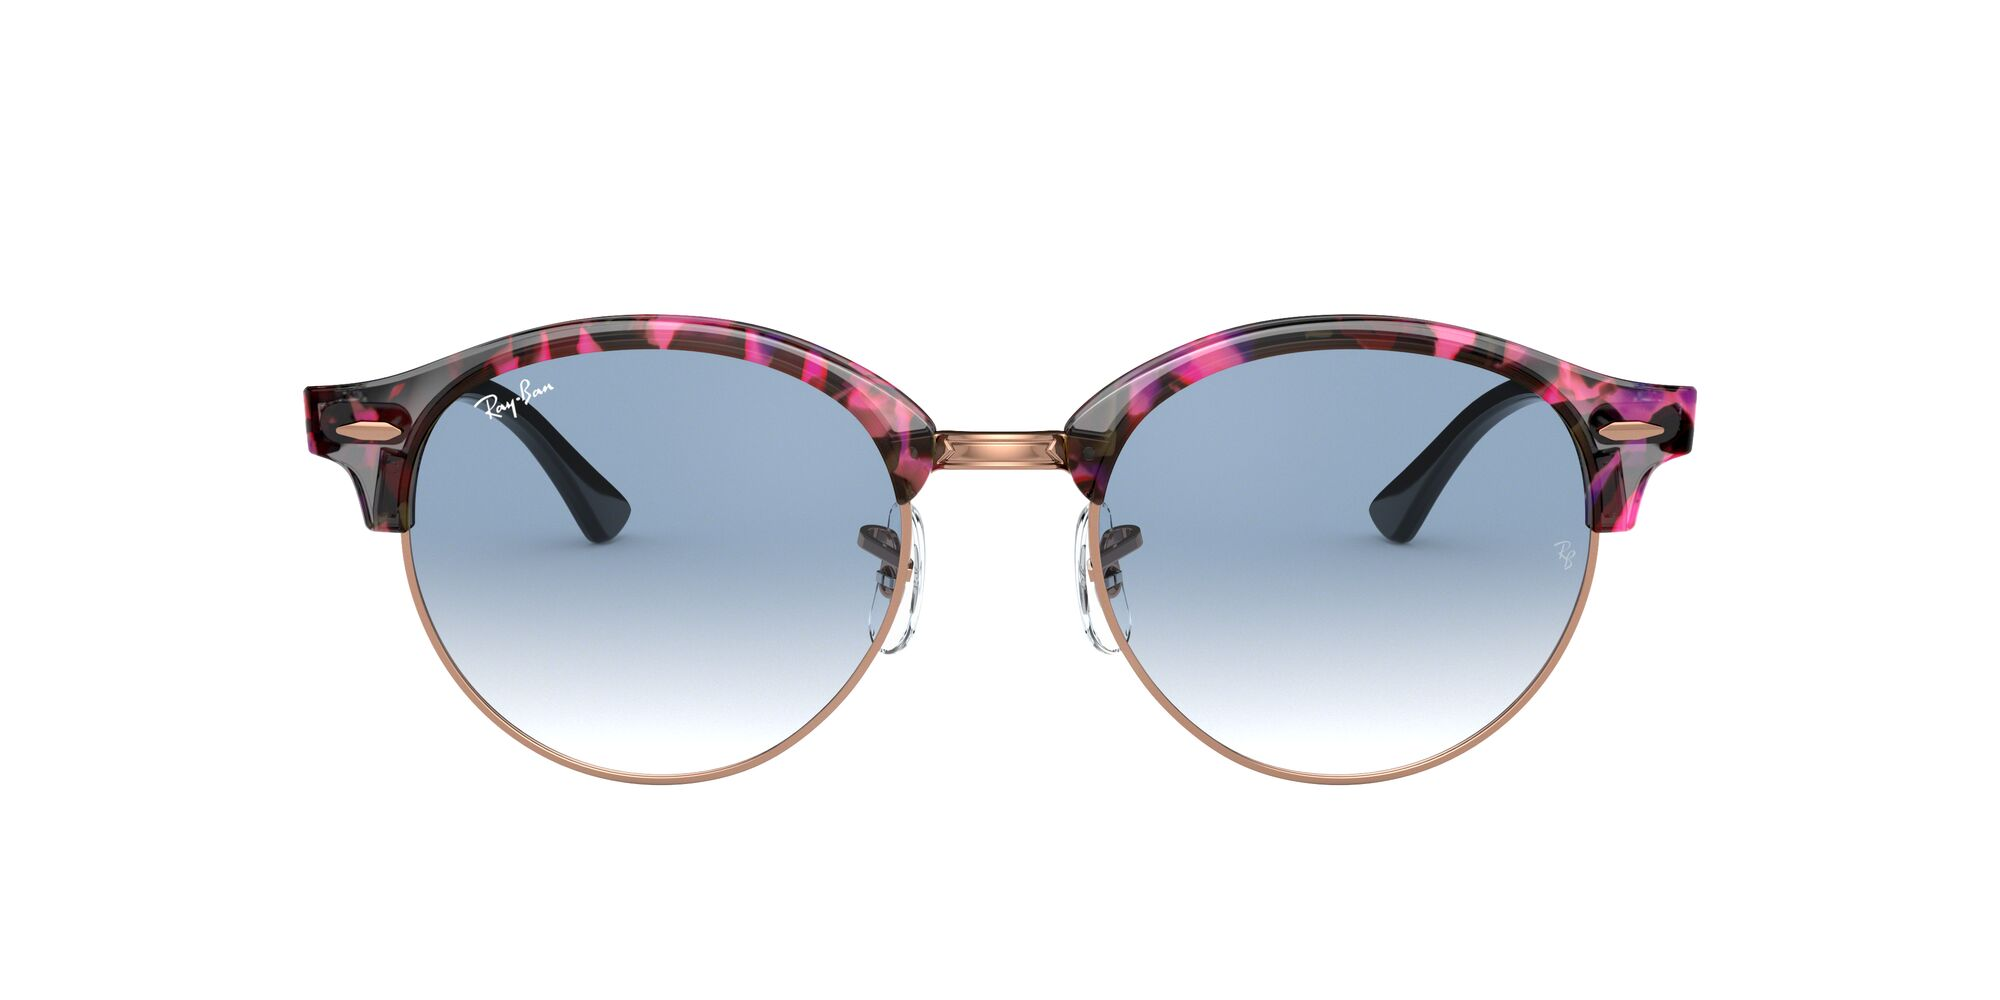 Front Ray-Ban Ray-Ban 0RB4246 12573F 51/19 Grijs/Blauw